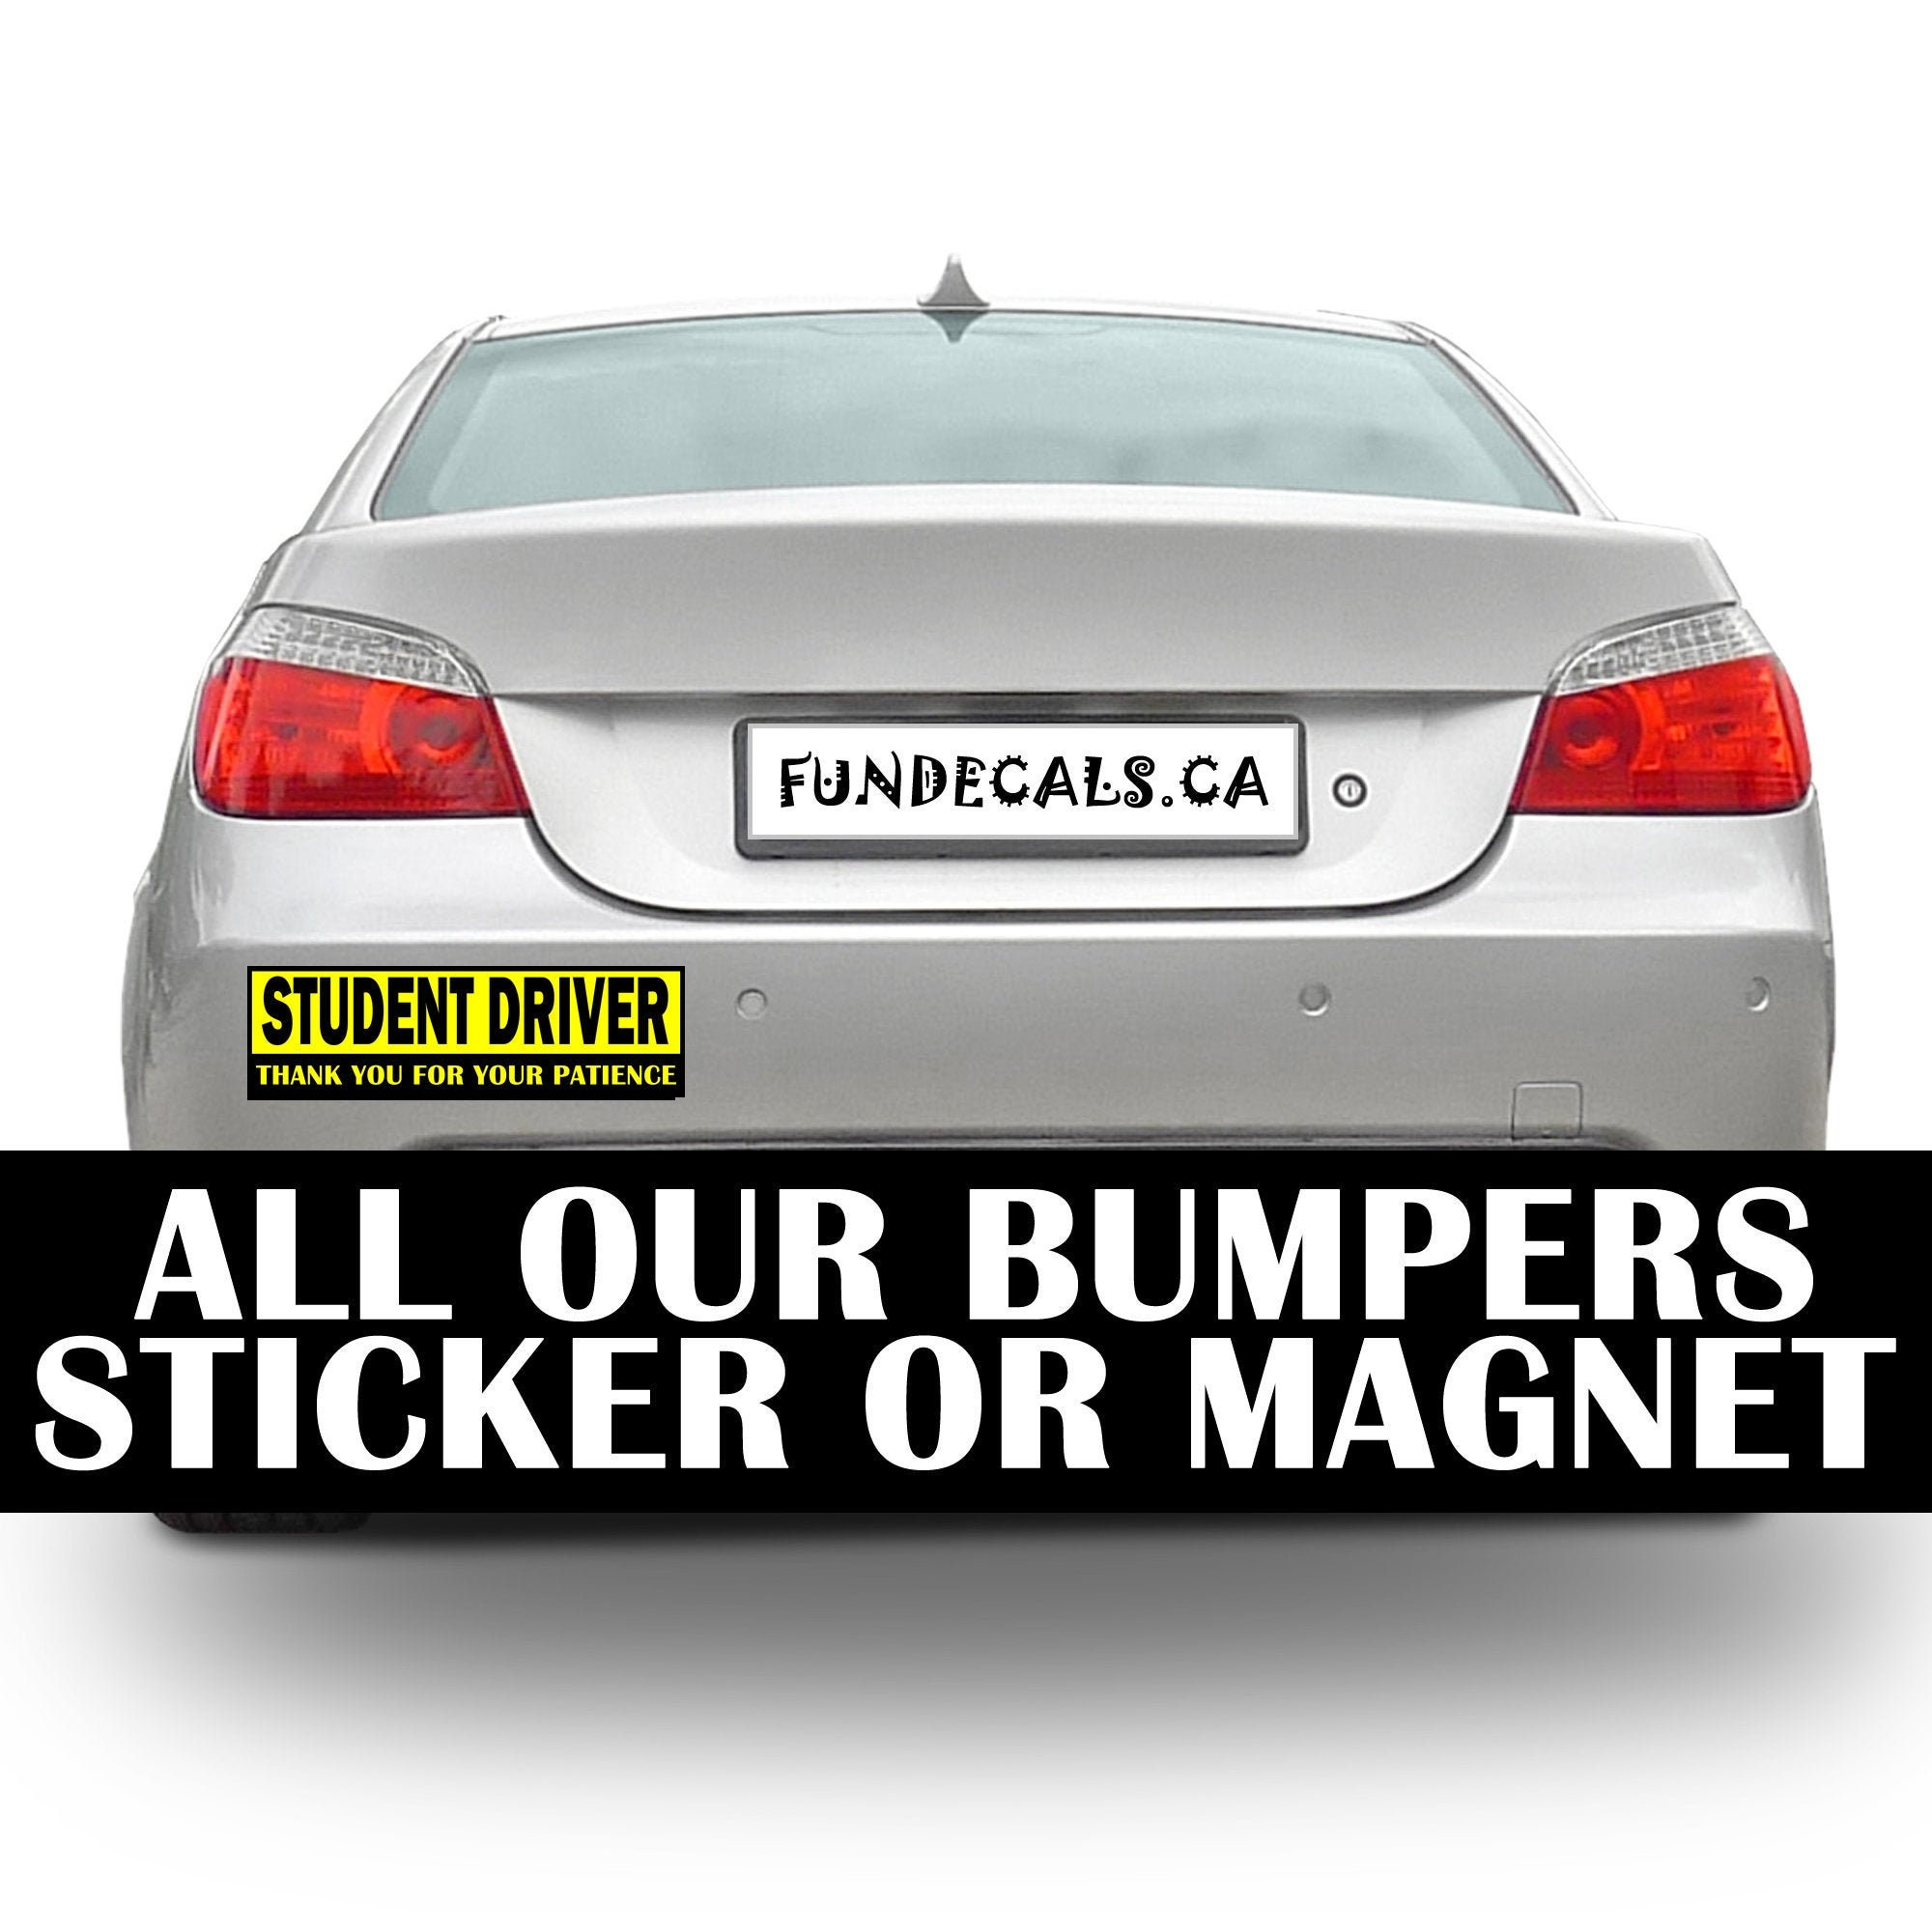 CAD$13.94 - 2X Student Driver Thank You For Your Patience 10 x 3 Bumper Sticker - Custom changes and orders welcomed!